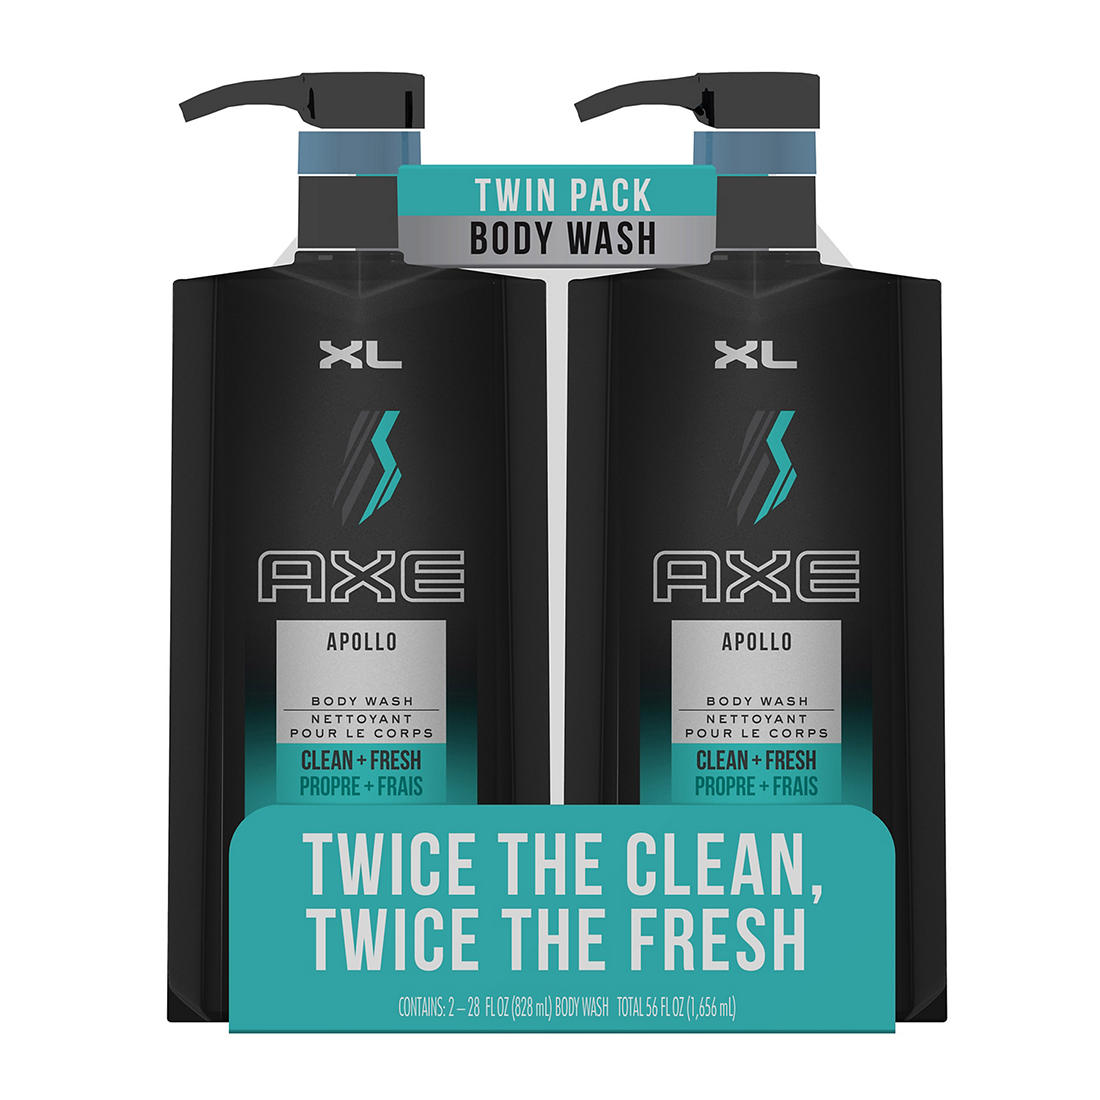 Axe Apollo Body Wash 2 ct / 28 oz